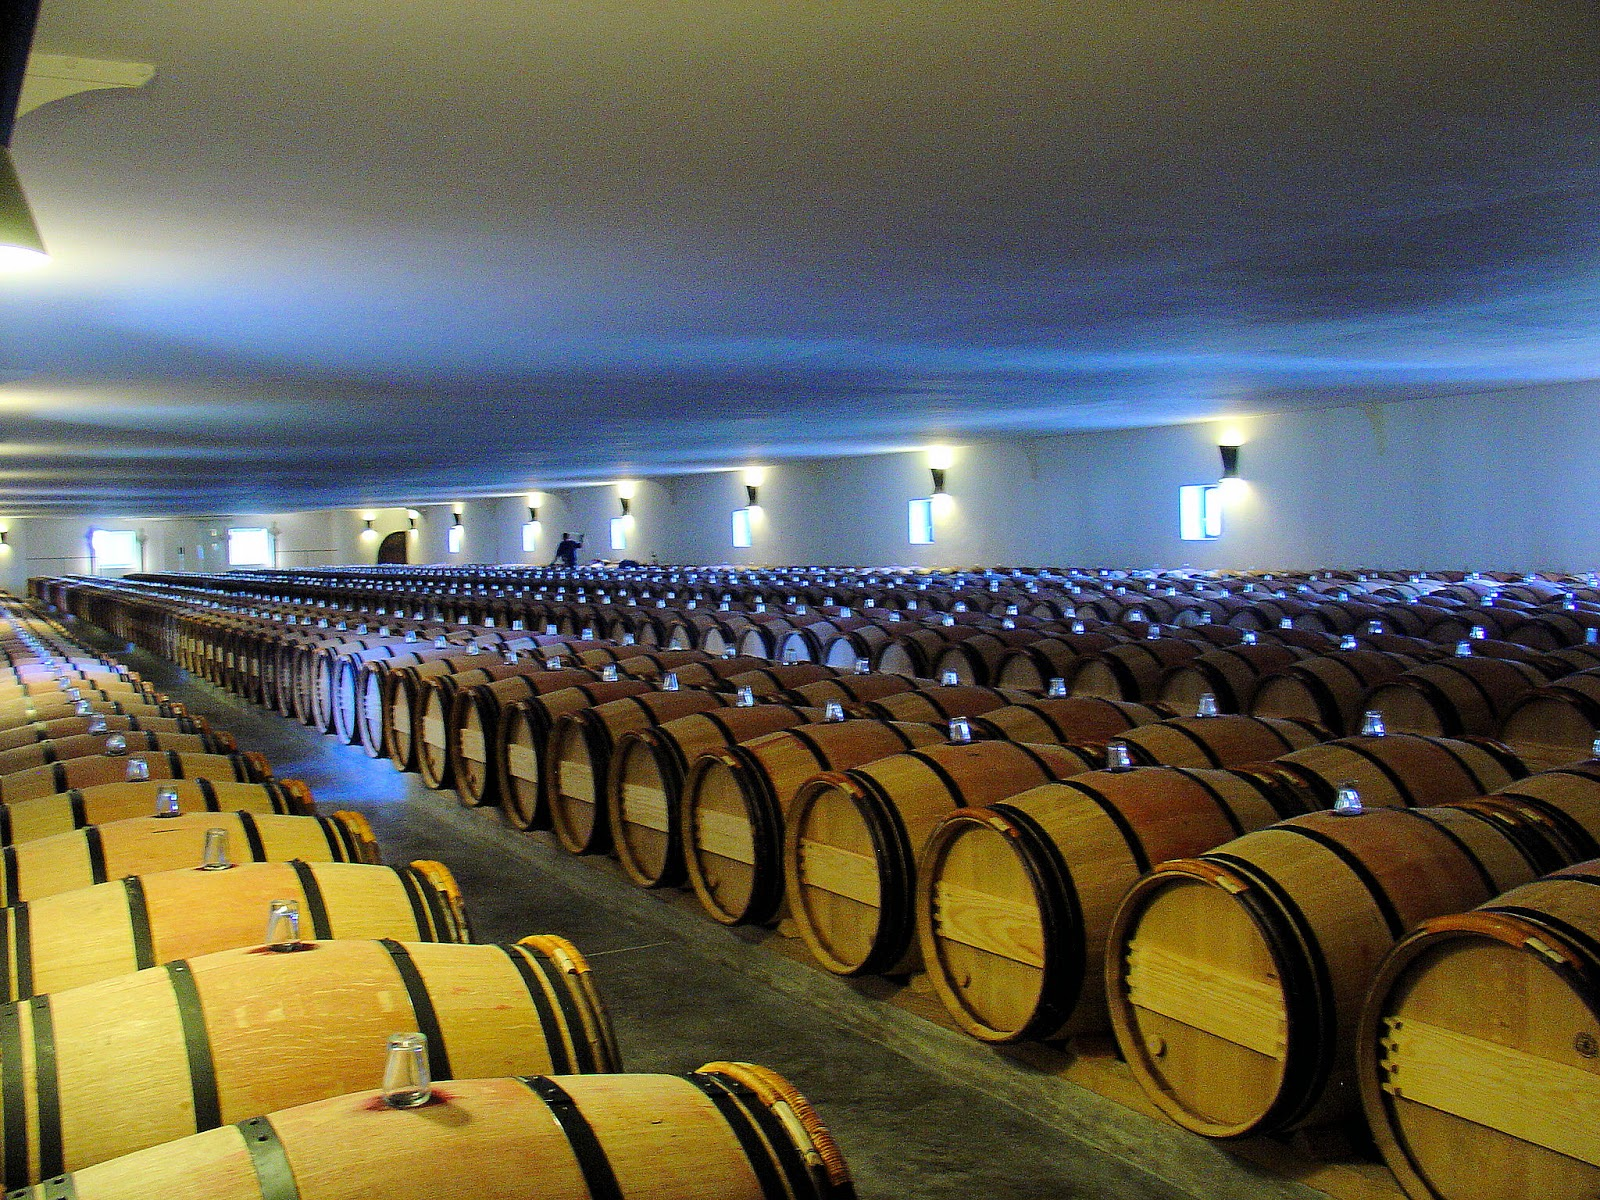 Barrel room at the Chateau Mouton-Rothschild.